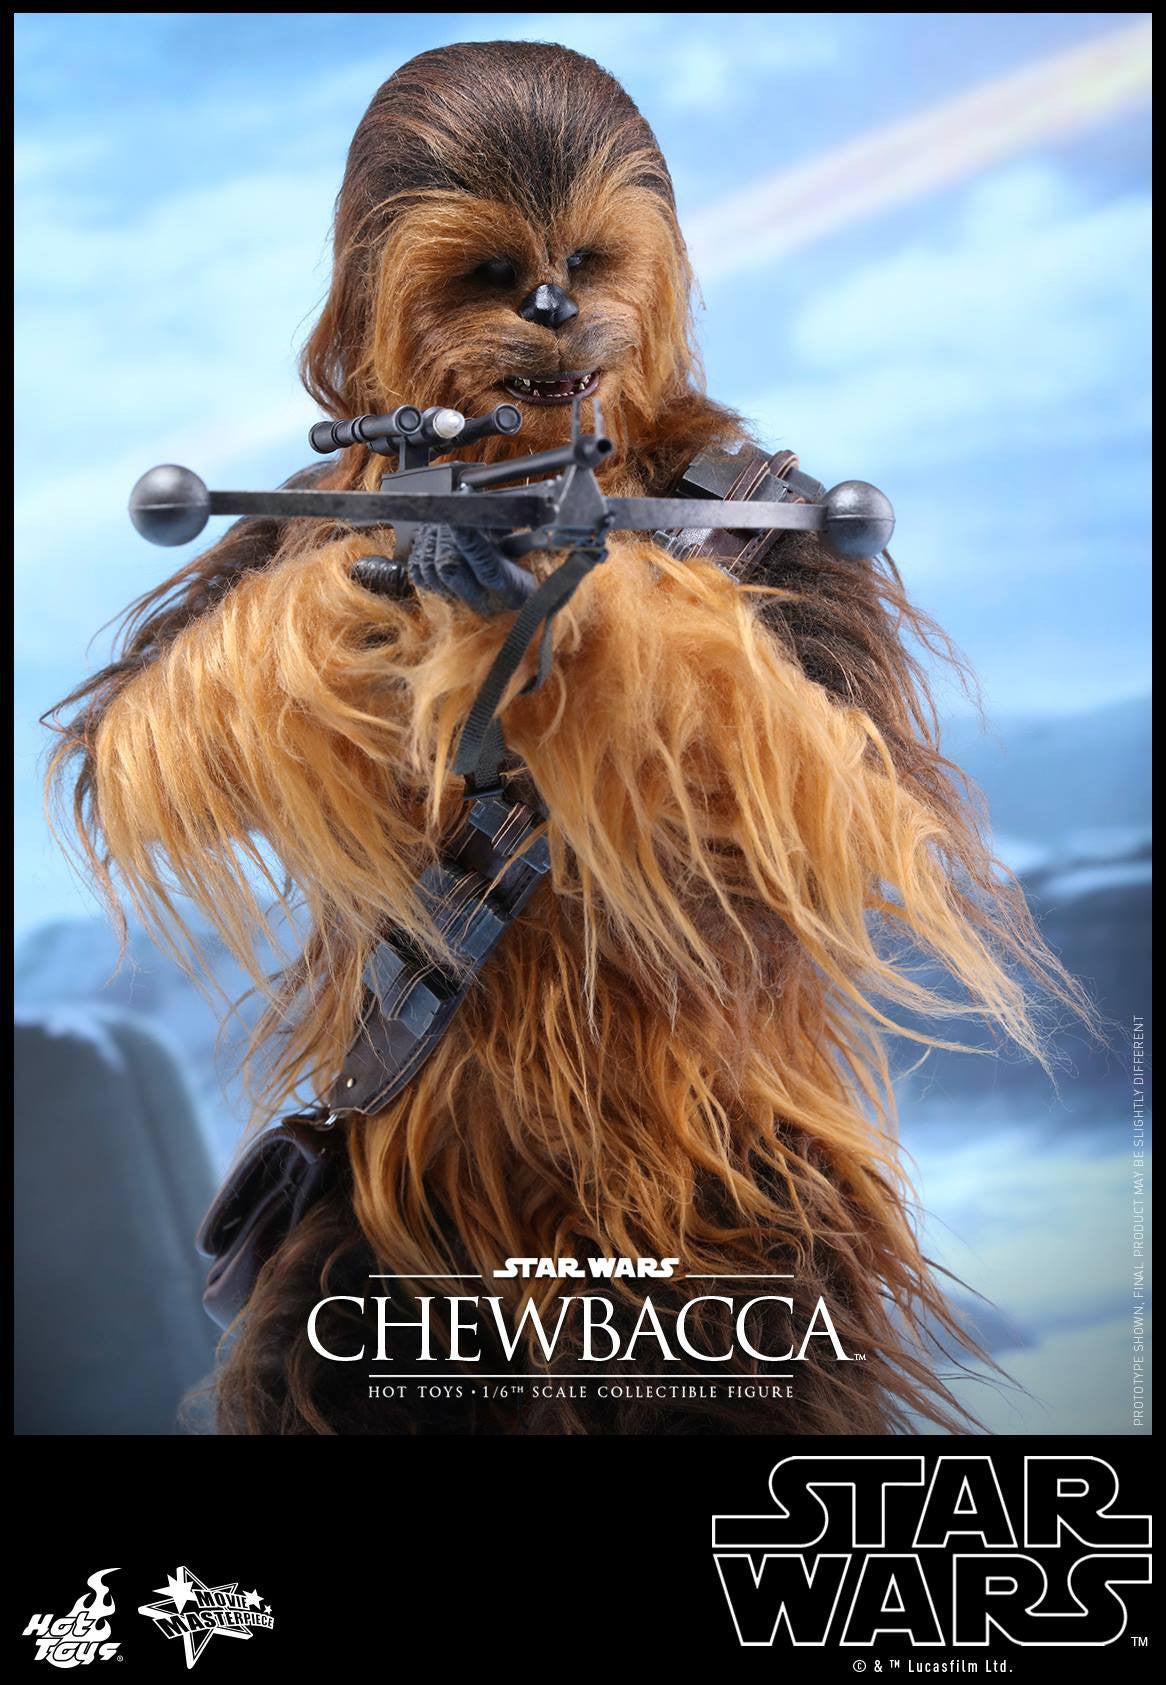 Hot Toys - MMS375 - Star Wars: The Force Awakens - Chewbacca - Marvelous Toys - 9